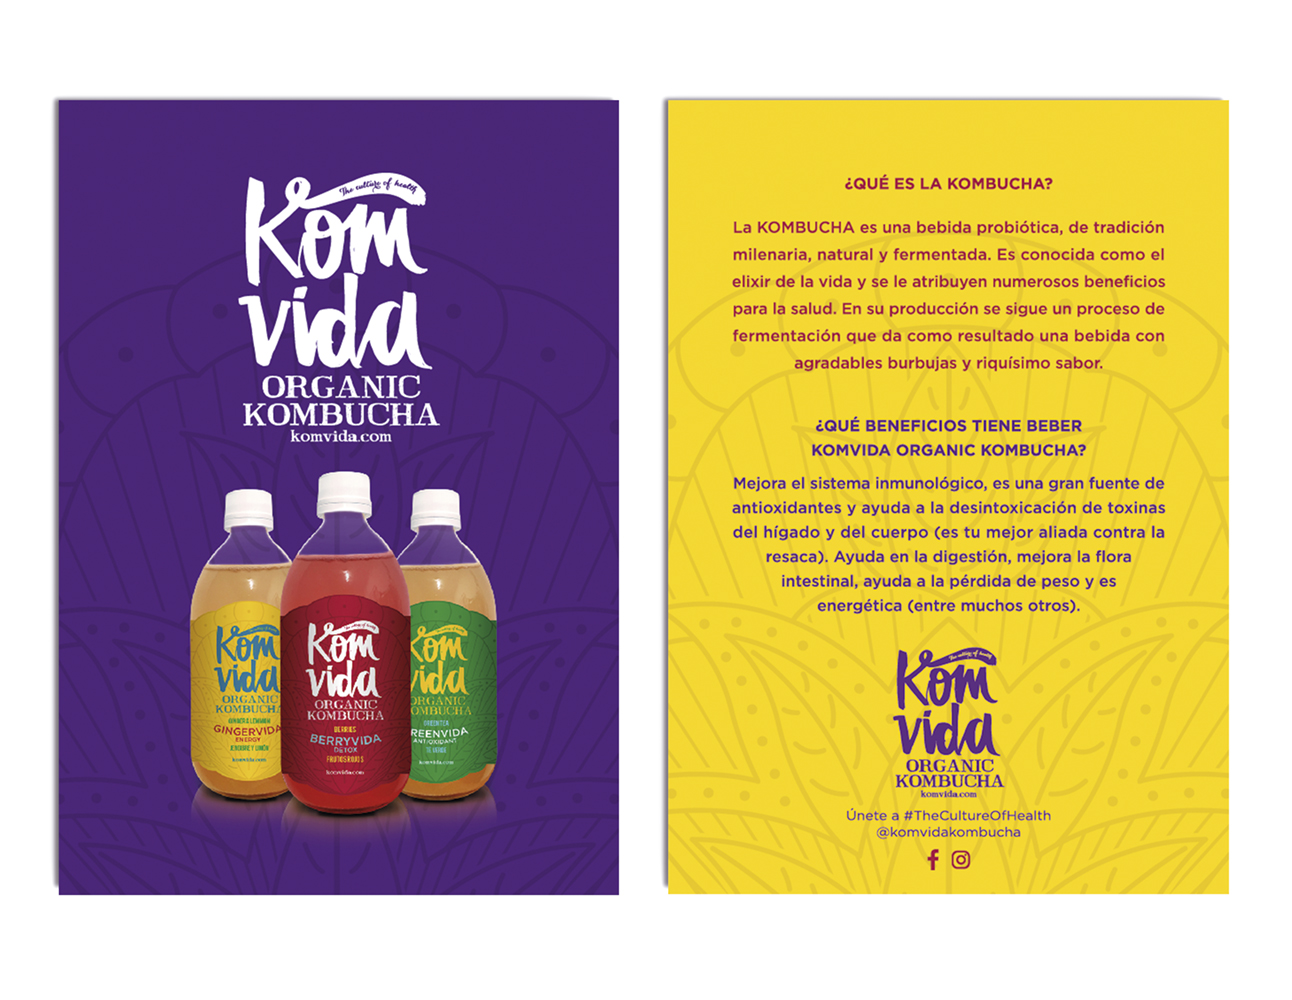 Komvida flyer color ideologo